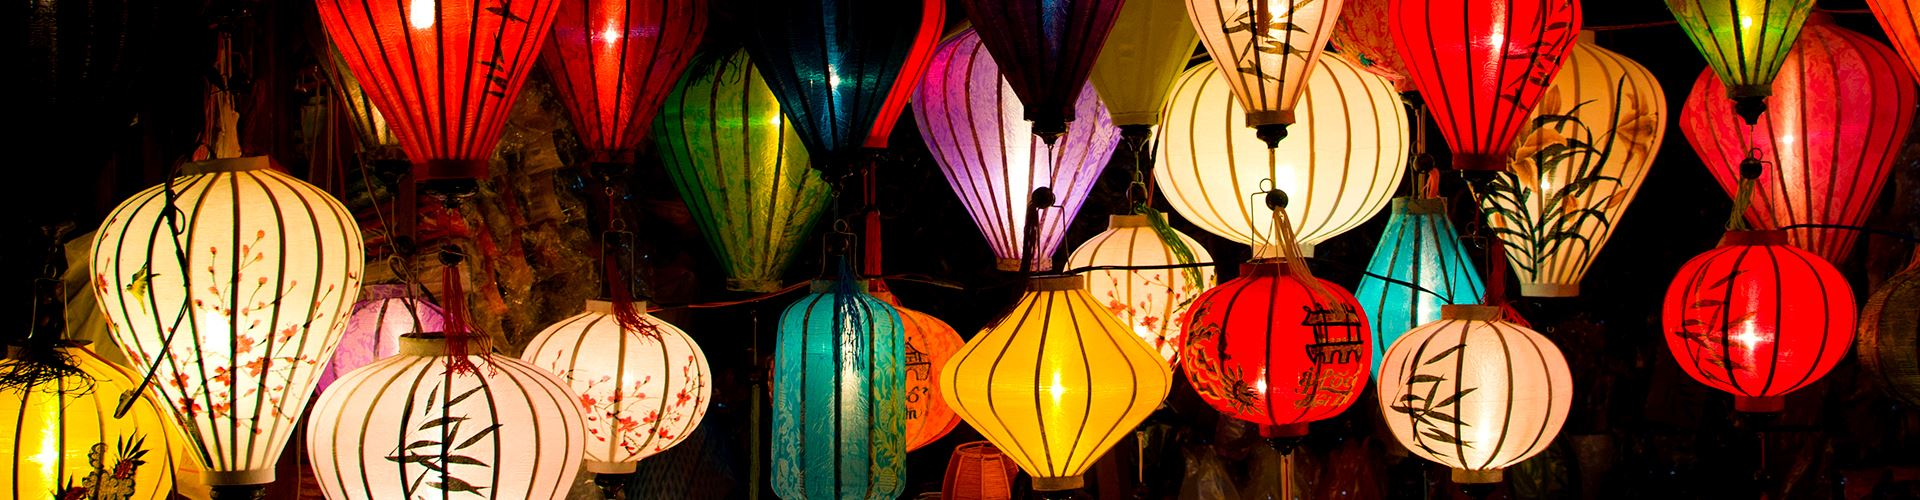 Handcrafted-lamp-in-ancient-town-Hoi-An.jpg